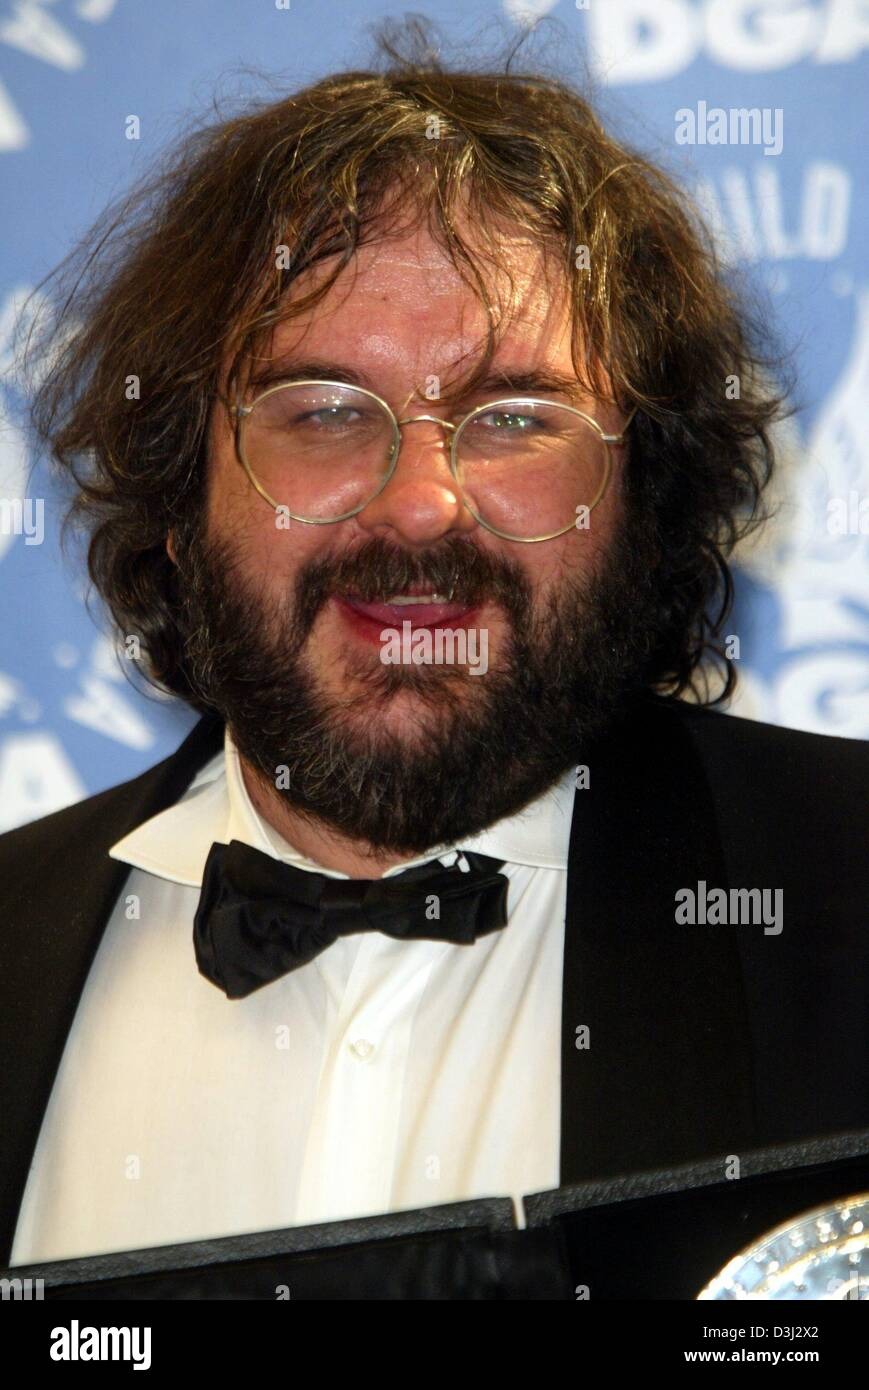 f9bbbcf829fe (dpa) - Film director Peter Jackson from New Zealand, smiles as he poses  with his trophy which he was awarded at the 56th Directors Guild Awards  ceremony in ...